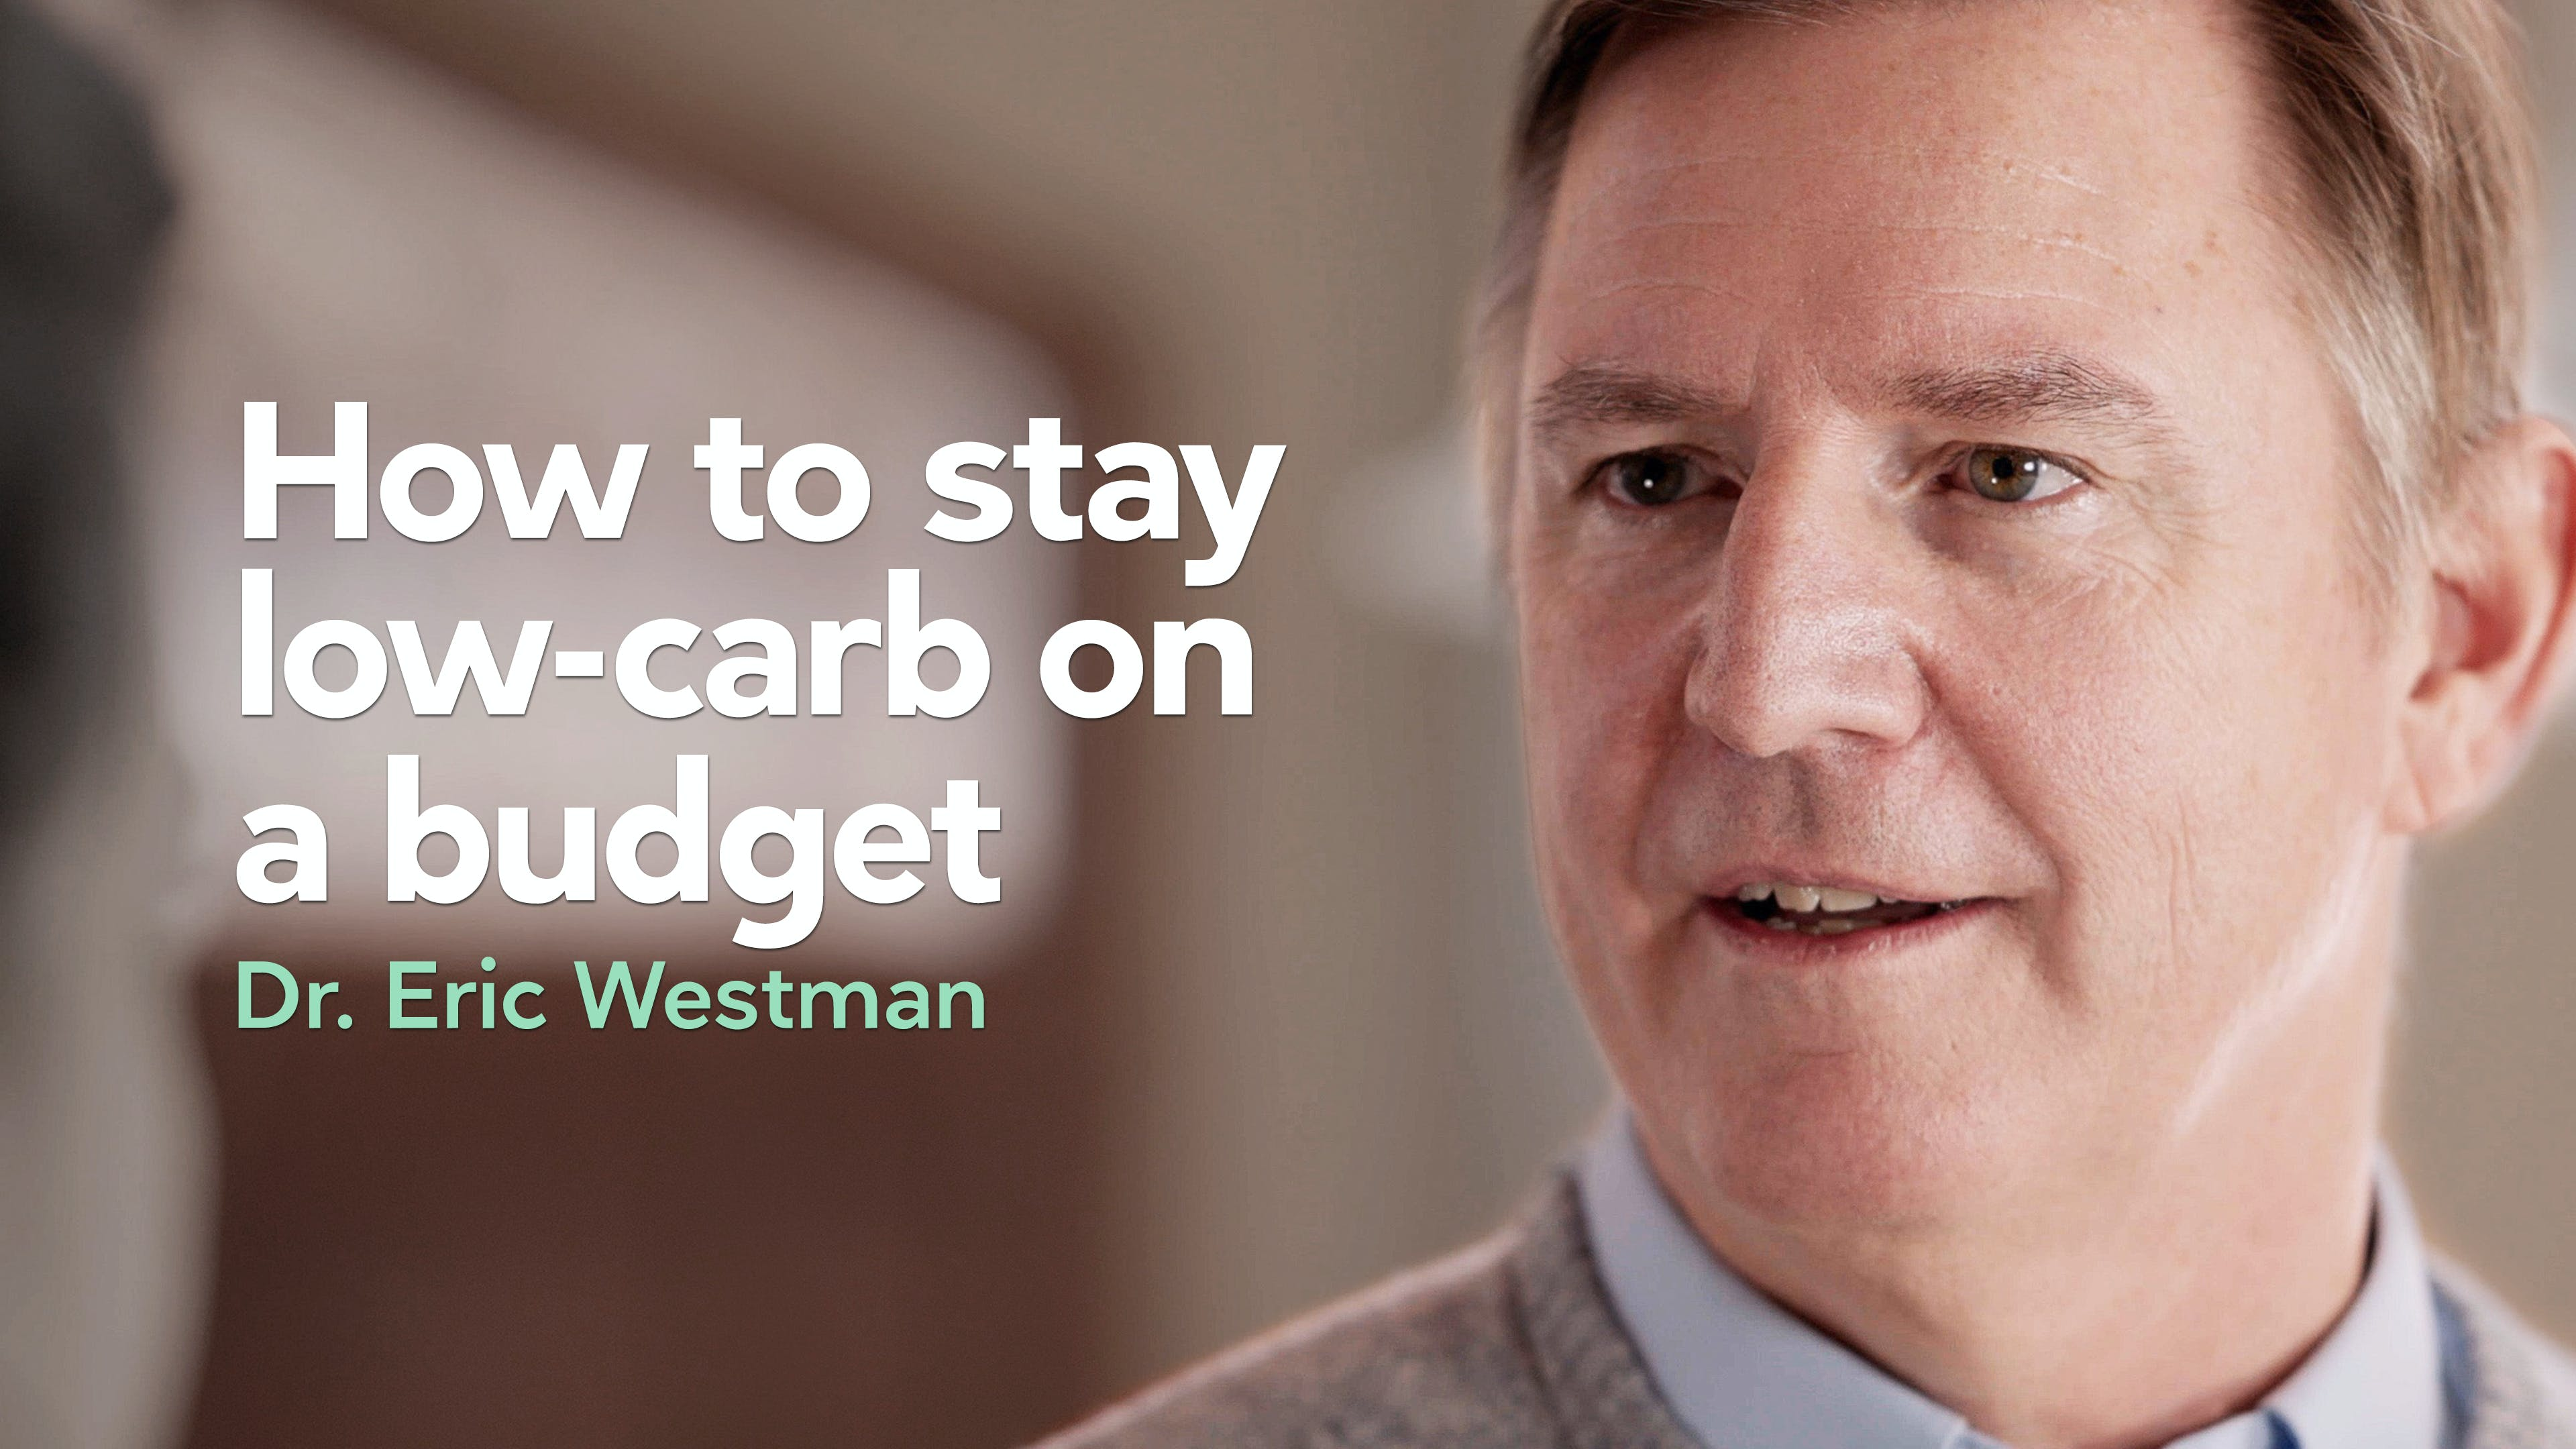 How to stay low carb on a budget — Dr. Eric Westman